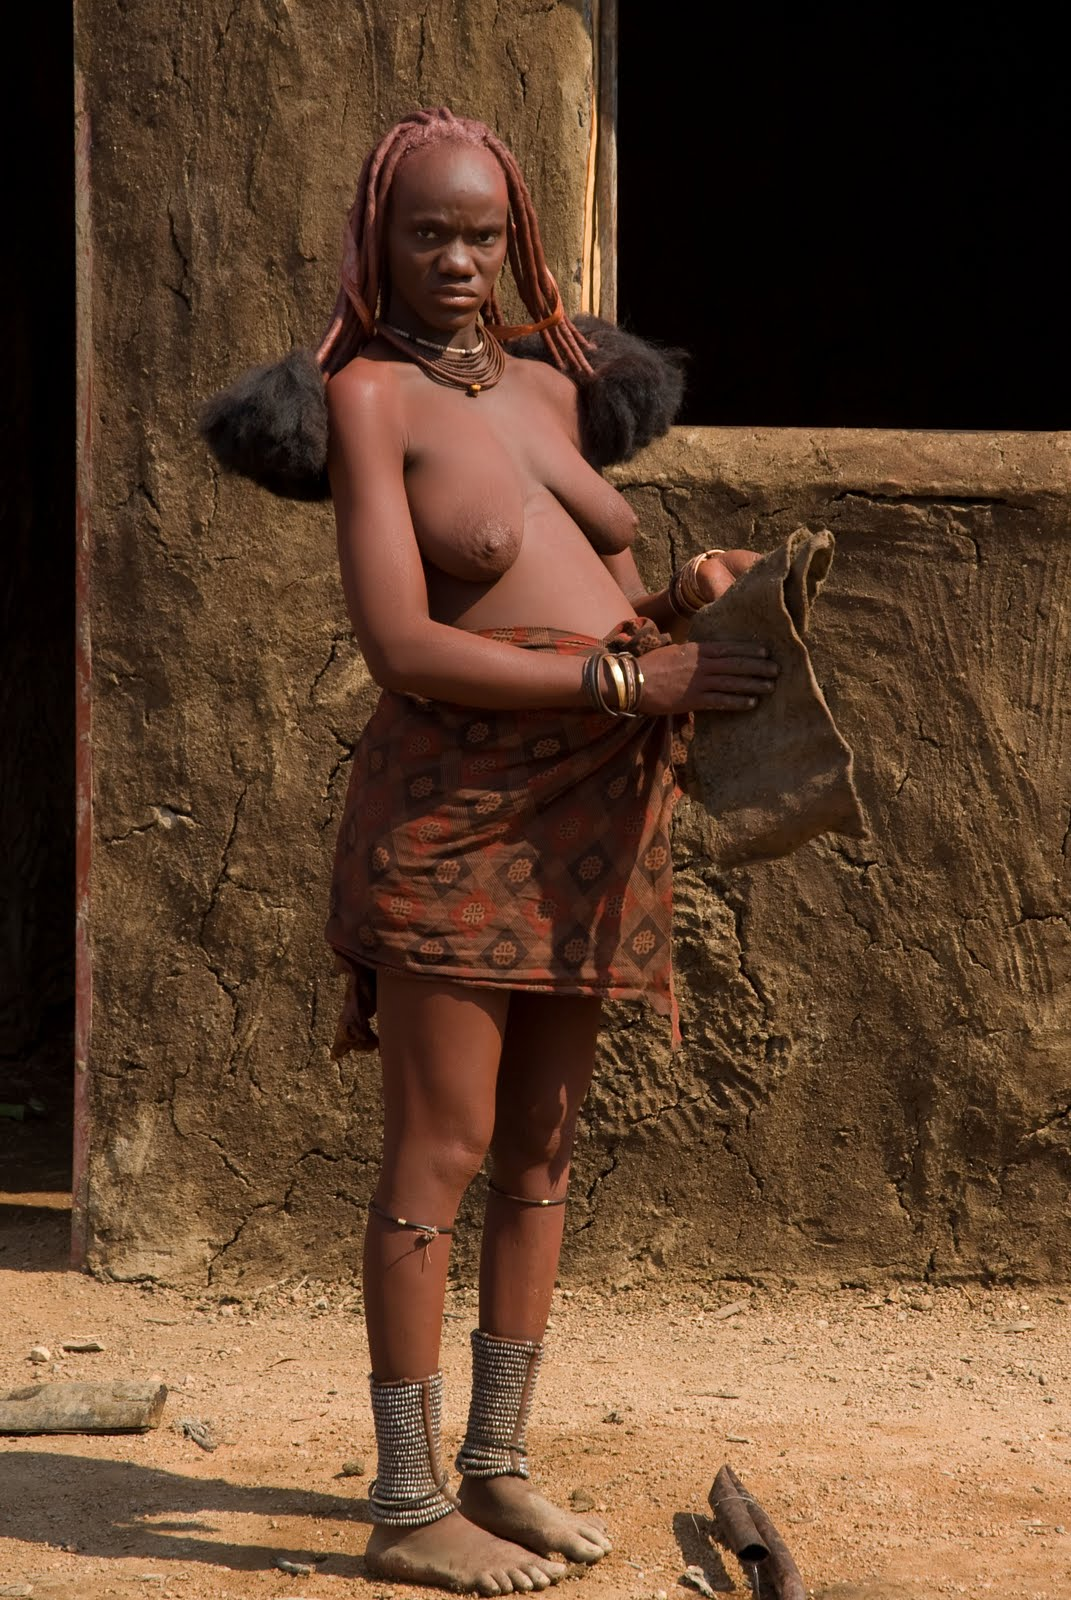 Impossible naked tribal teen girls